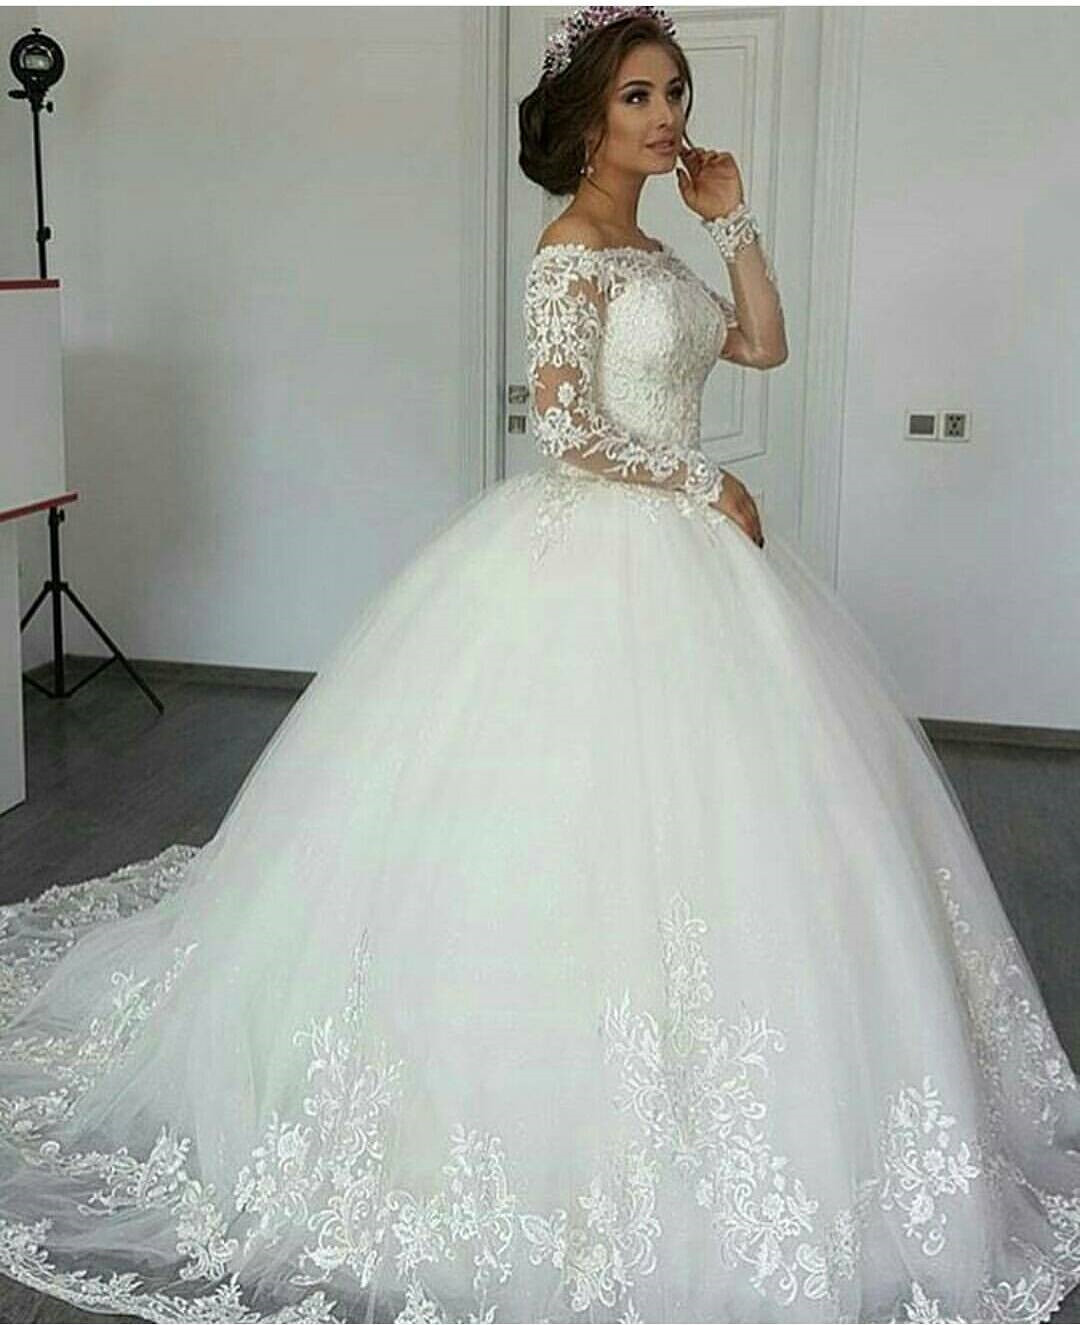 long sleeve wedding dress ivory wedding dress wedding ball gown lace applique wedding dress. Black Bedroom Furniture Sets. Home Design Ideas